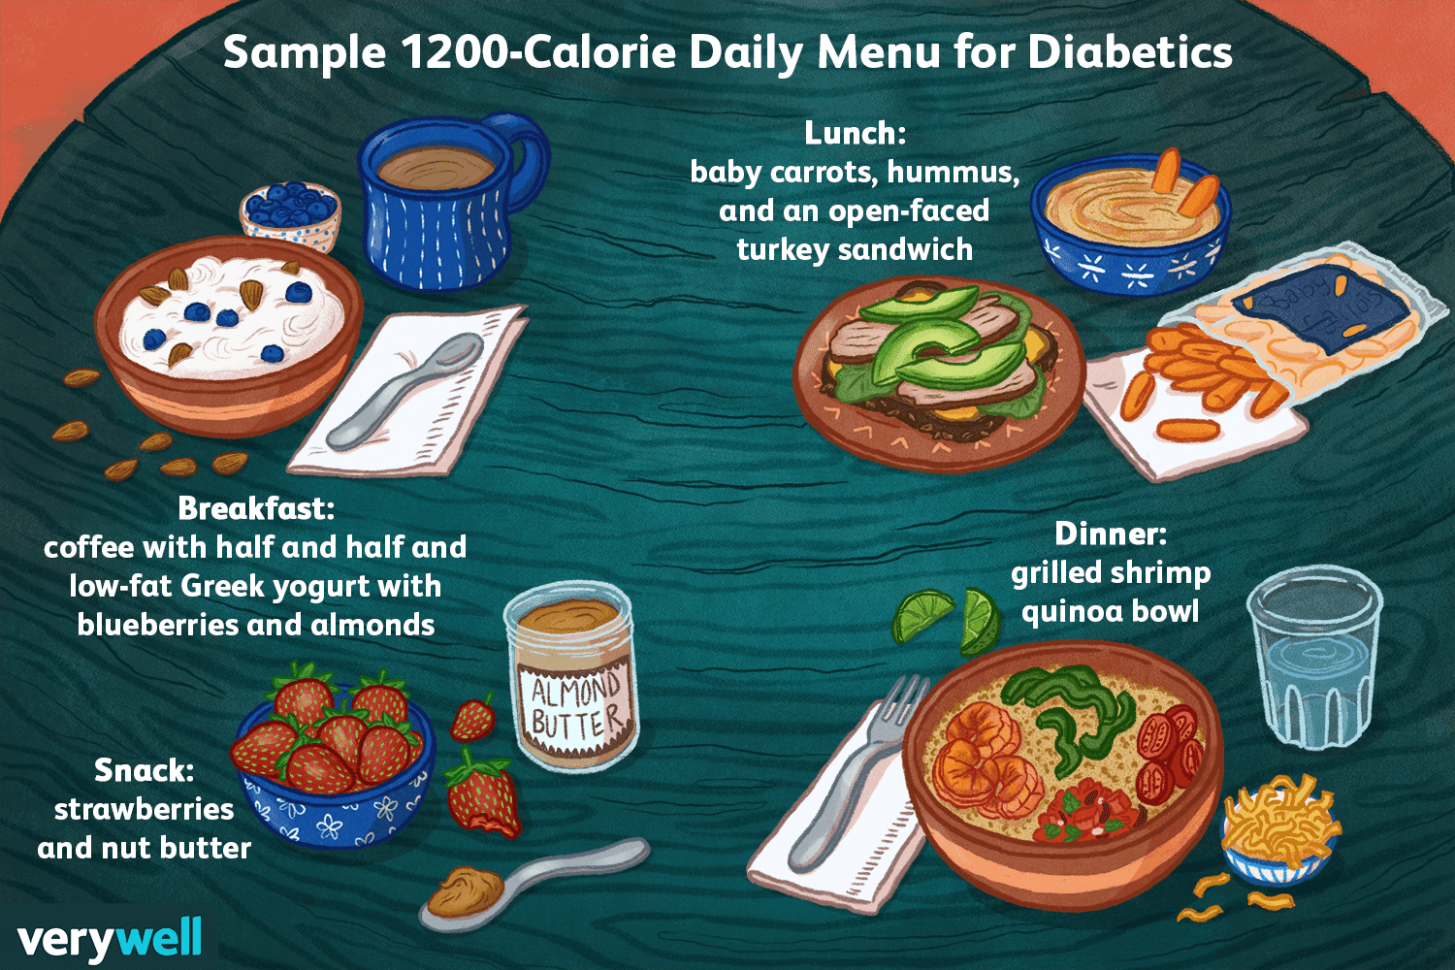 Sample Low-Fat 12-Calorie Diabetes Diet Meal Plan - Easy Recipes High In Calories